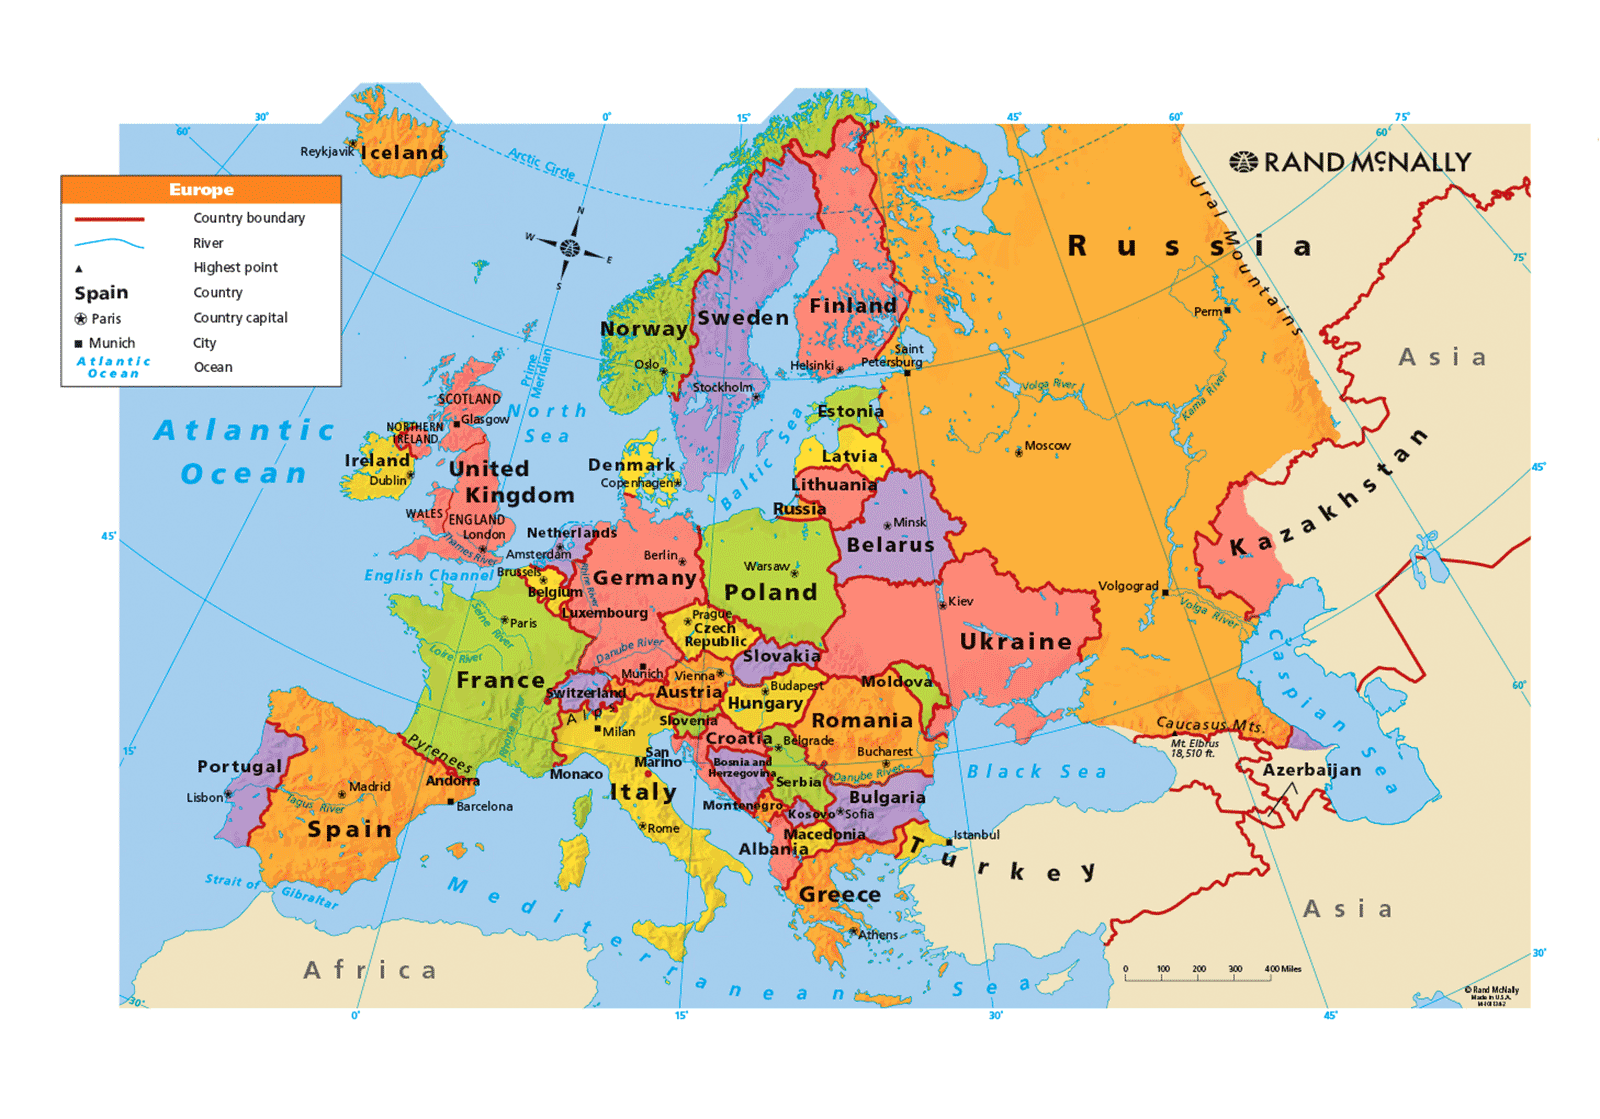 Large Map of Europe Only | europe political map map tools print pdf on crete on a map of europe, war map of europe, high resolution map of europe, clear map of europe, need map of europe, old world map of europe, downloadable map of europe, london on map of europe, vintage map of europe, latest map of europe, study map of europe, google earth map of europe, political map of western europe, line map of europe, full screen map of europe, detailed map of europe, printable blank map of europe, the physical map of europe, ancient old map of europe, complete map of europe,